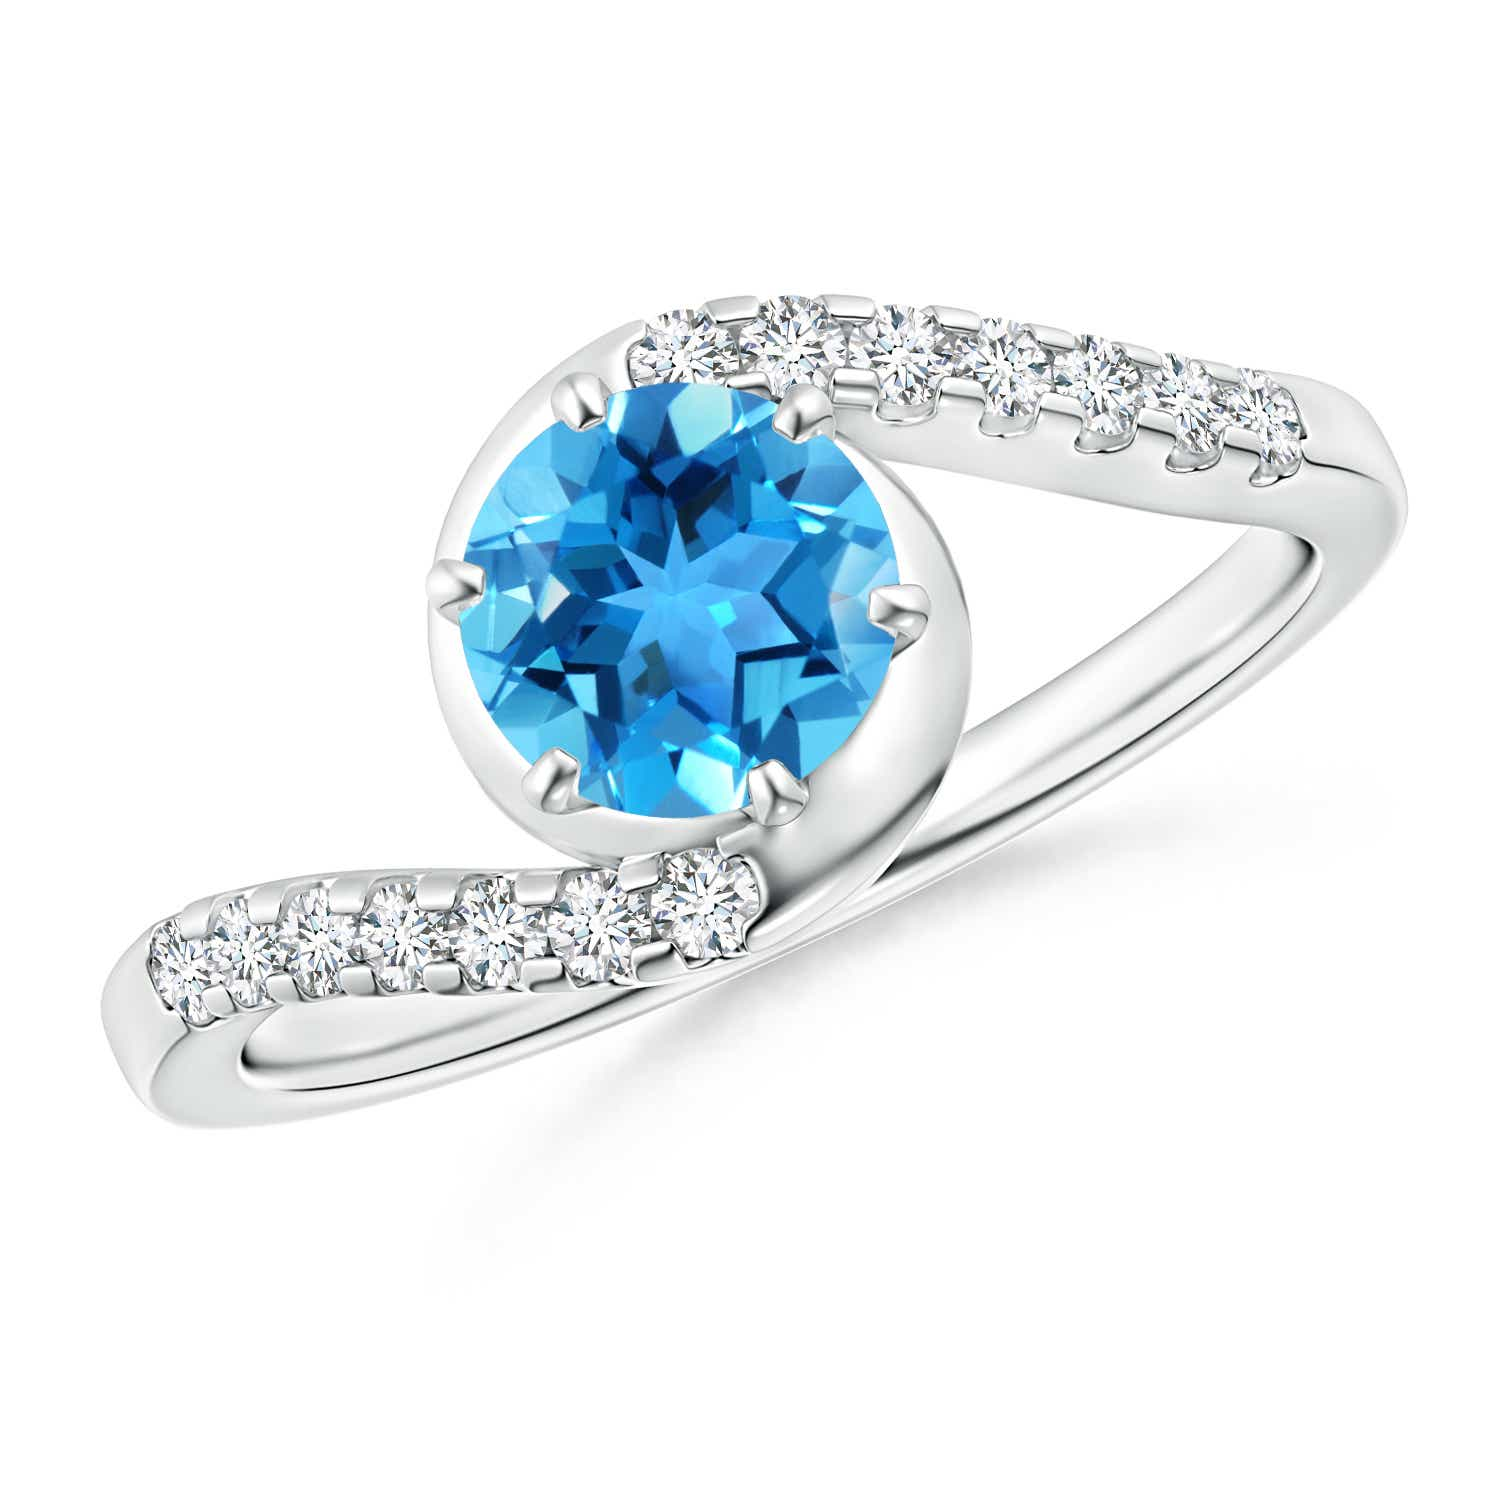 Prong Set Swiss Blue Topaz Bypass Ring with Diamond Accents - Angara.com